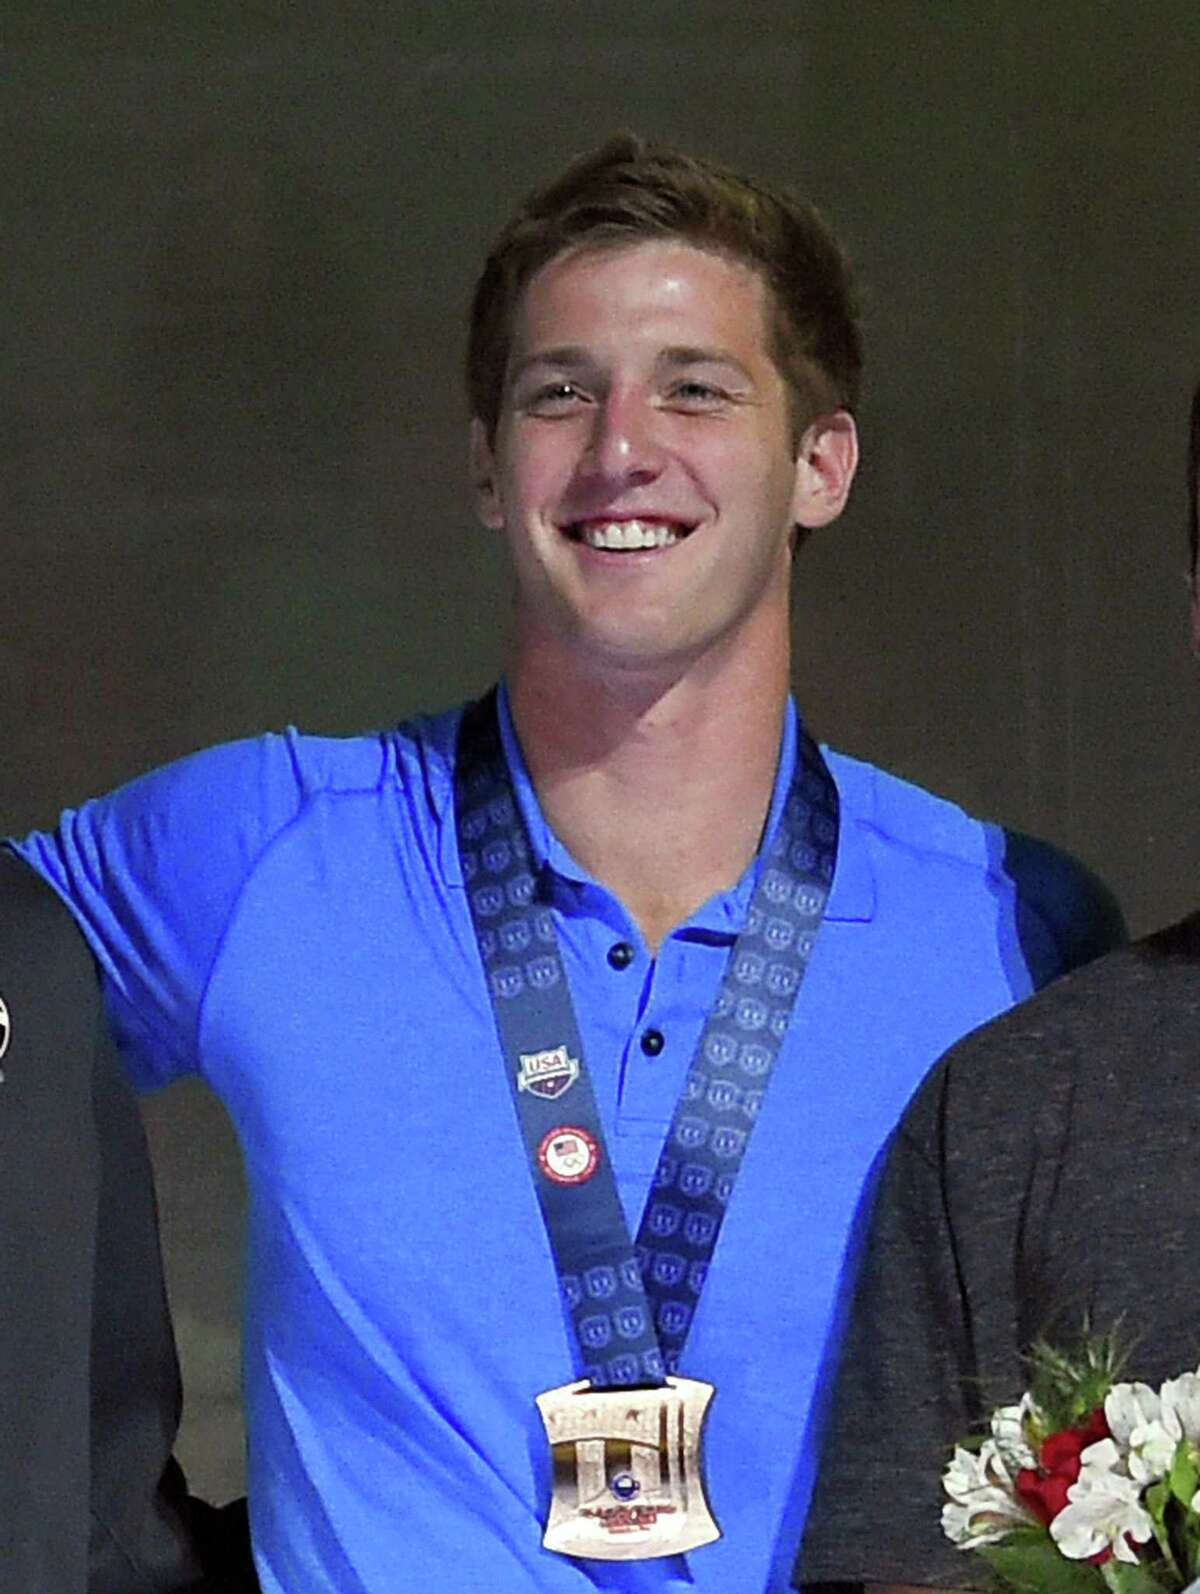 Former Churchill and UT standout Jimmy Feigen smiles during the men's 400-meter relay team medal ceremony at the U.S. Olympic Swimming Trials, in Omaha, Neb., on July 3, 2016.